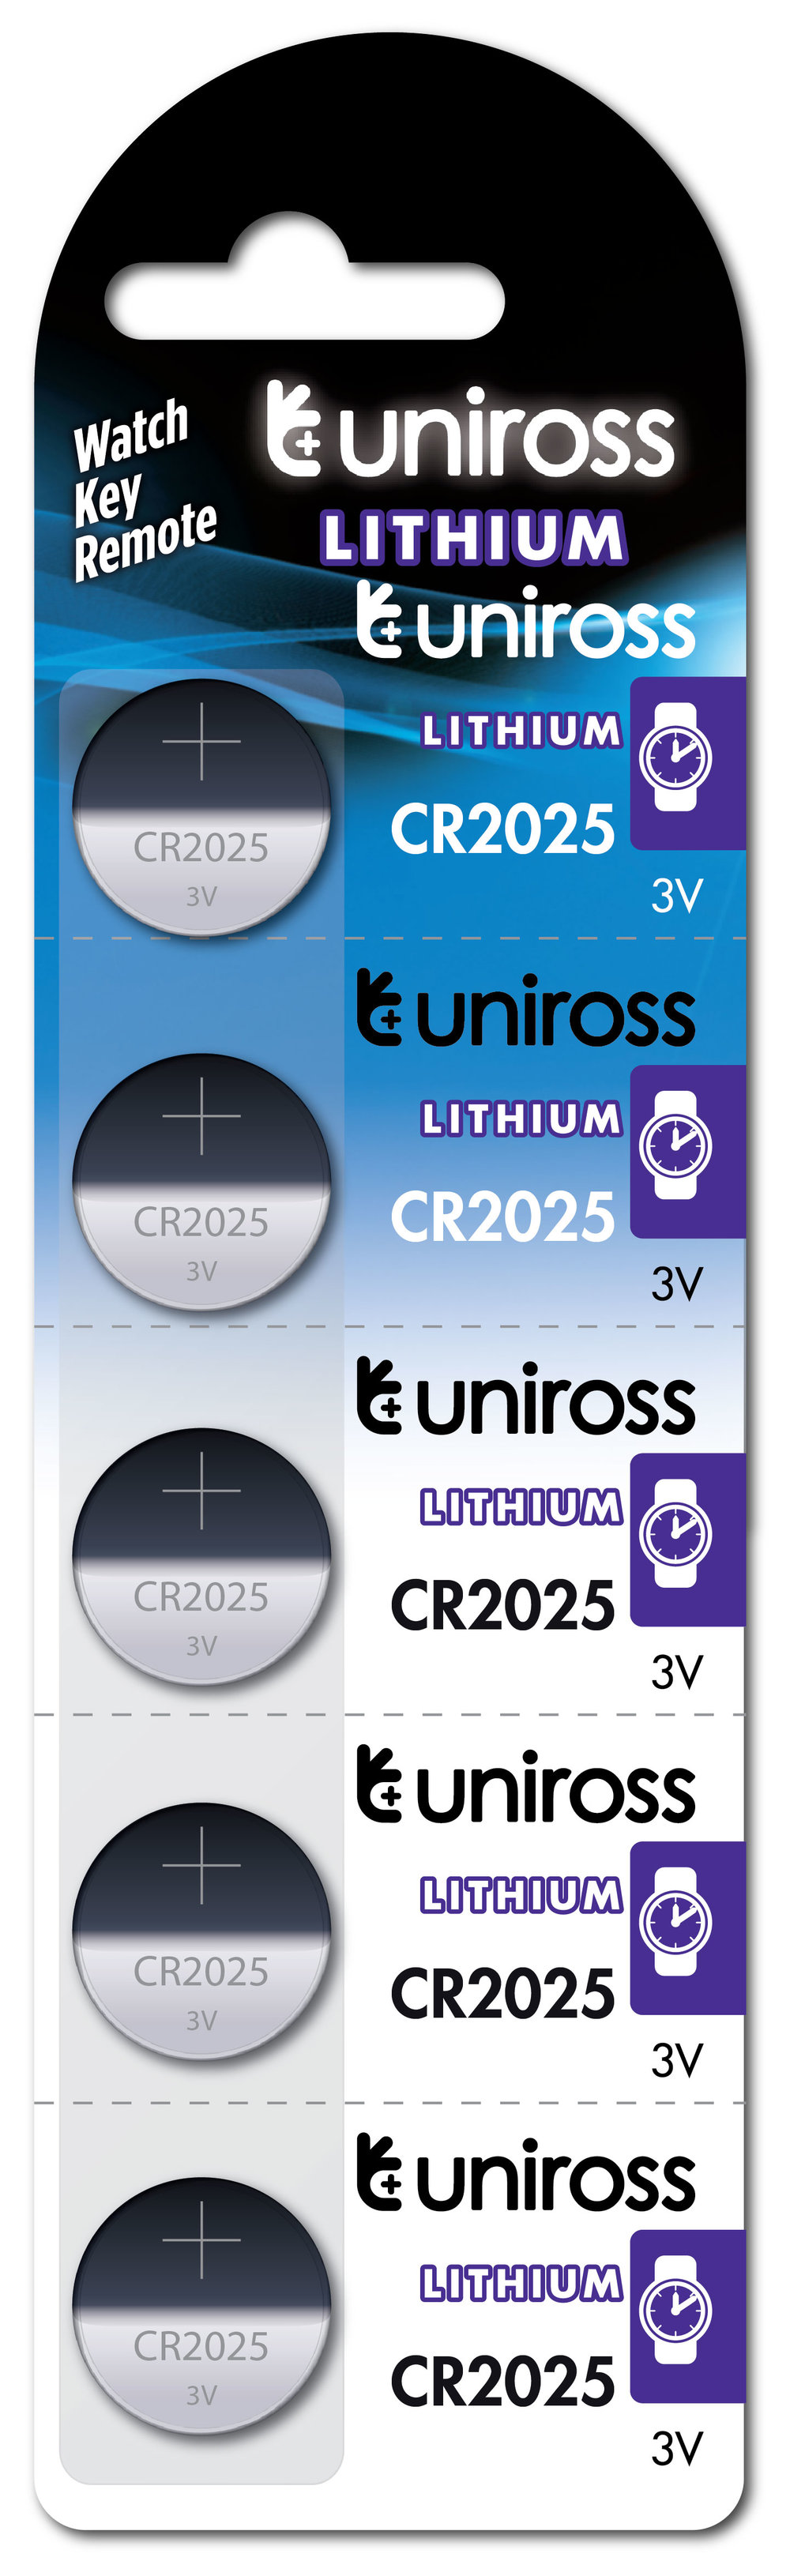 Button_Cell_[U5CR2025] UNIROSS BP5 CR2025 LITHIUM.jpg